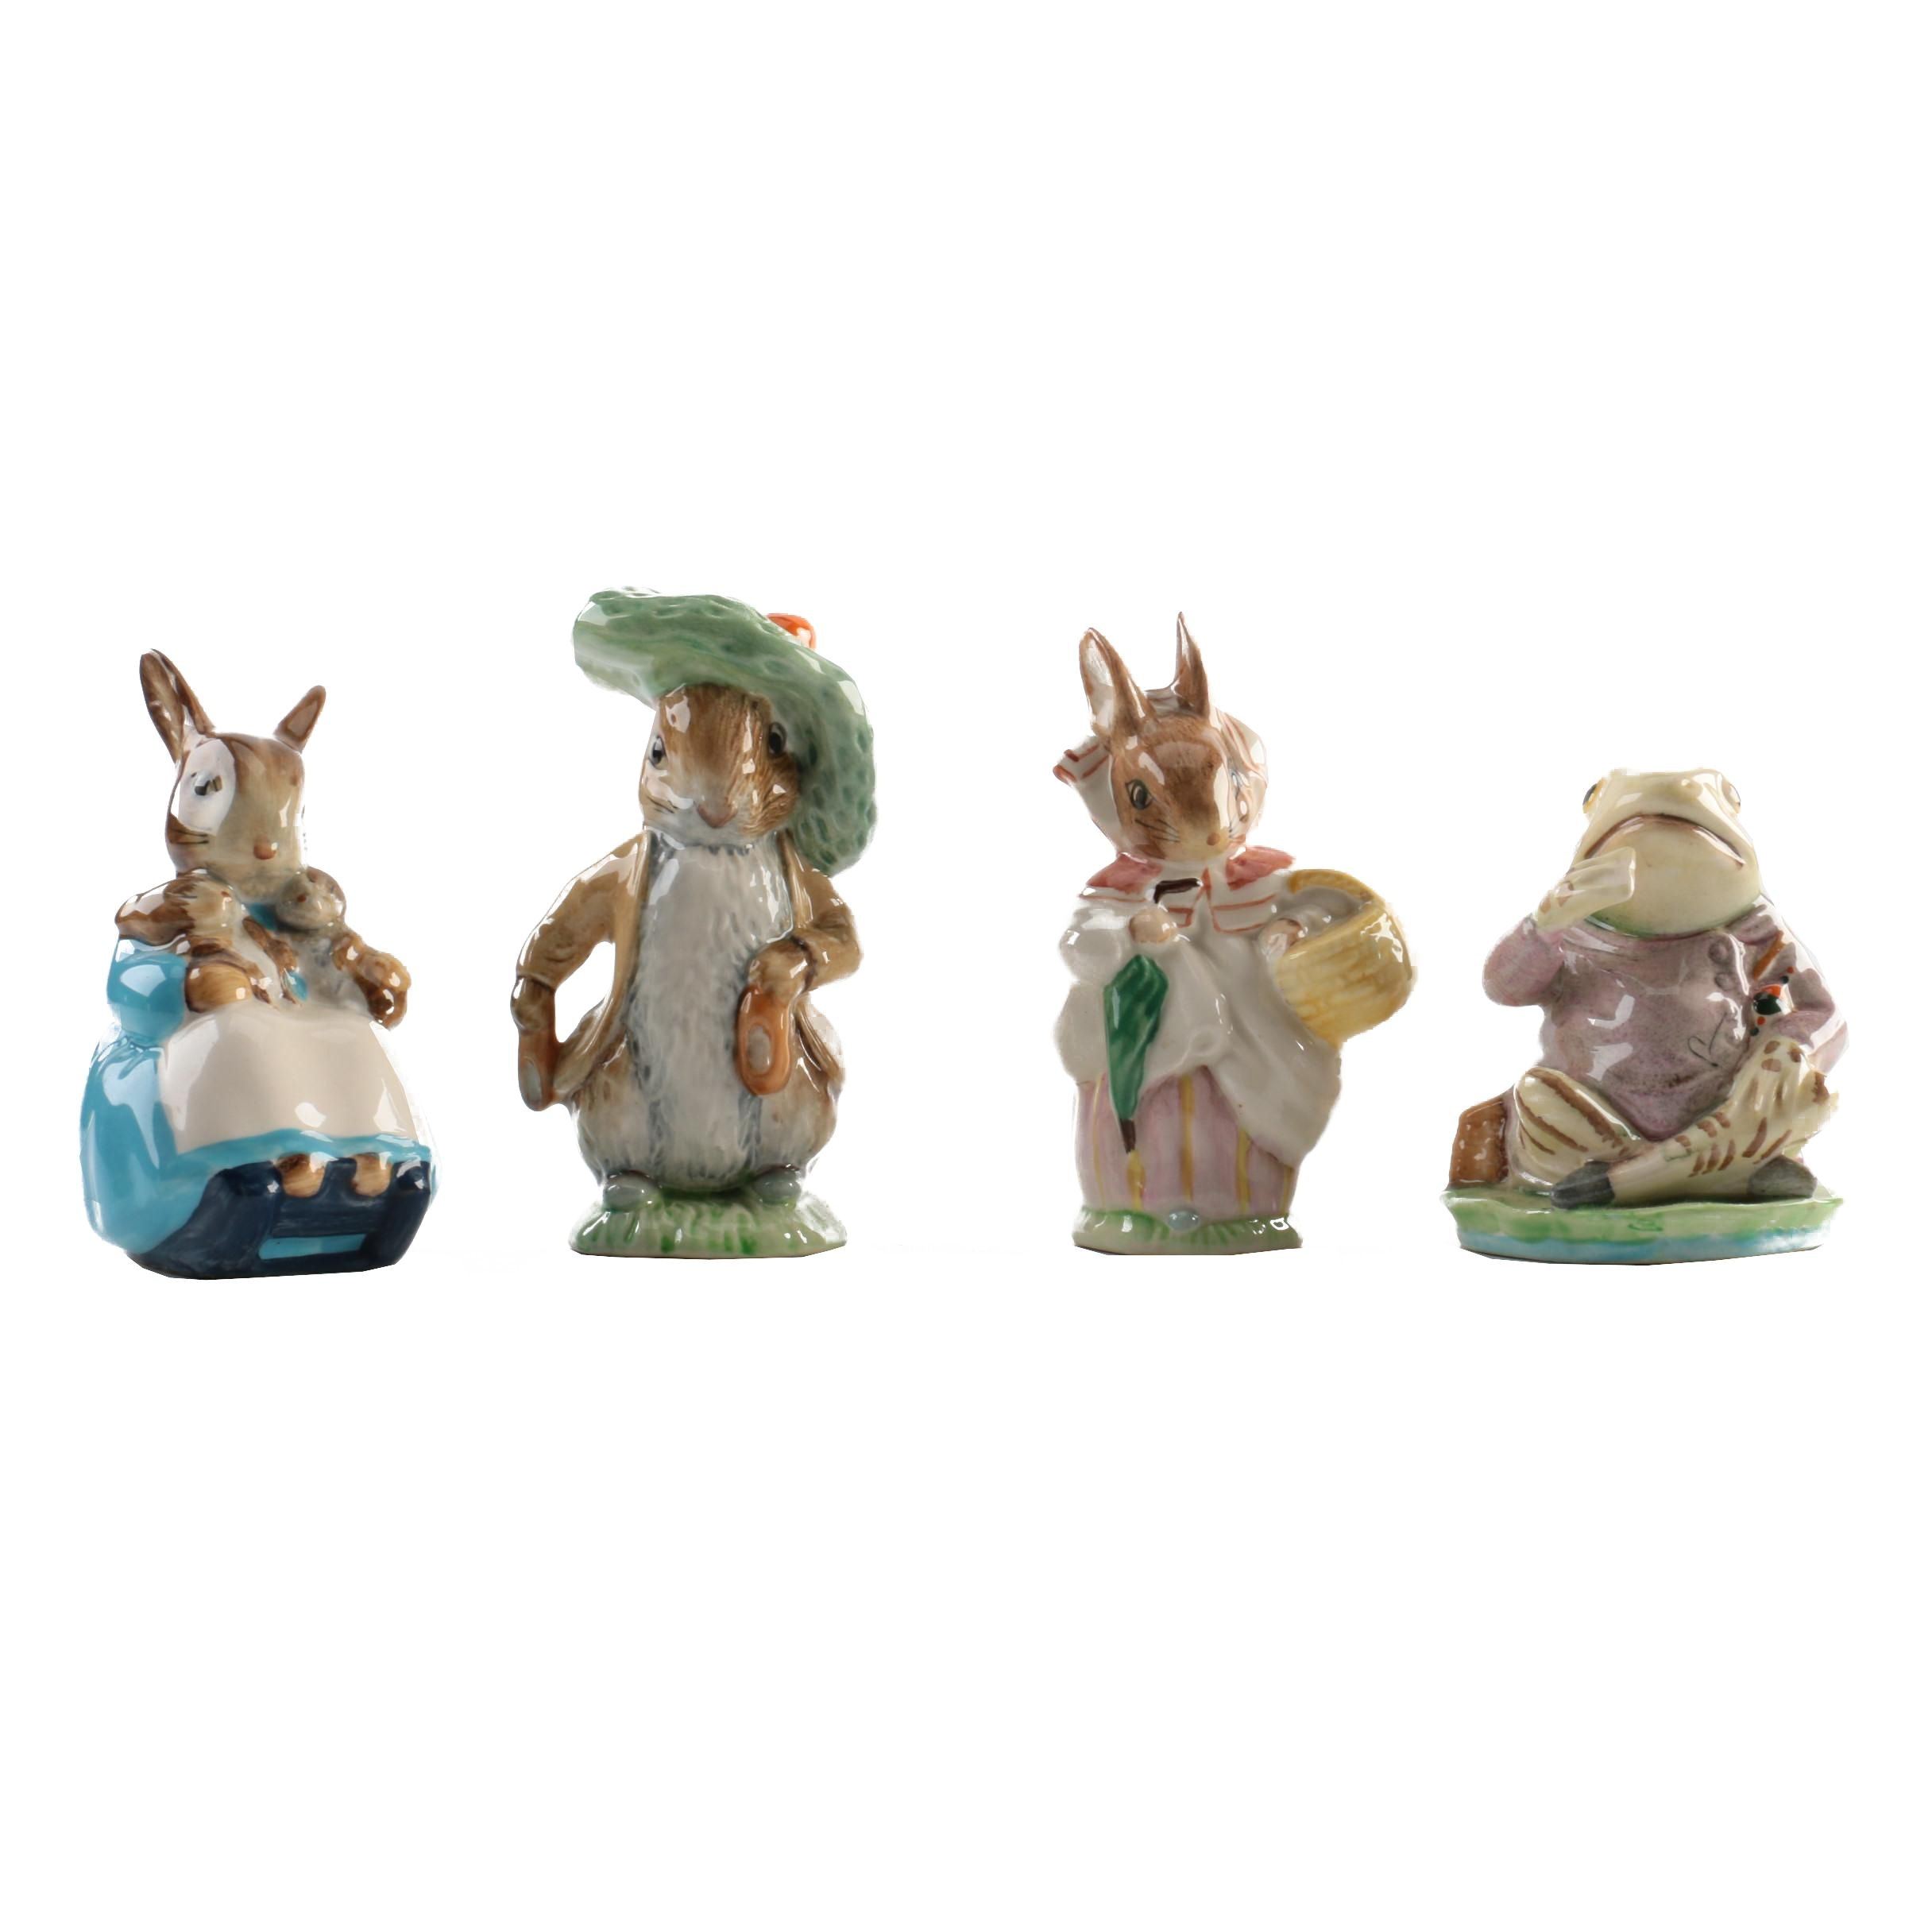 Royal Doulton and Beswick England Beatrix Potter Character Figurines